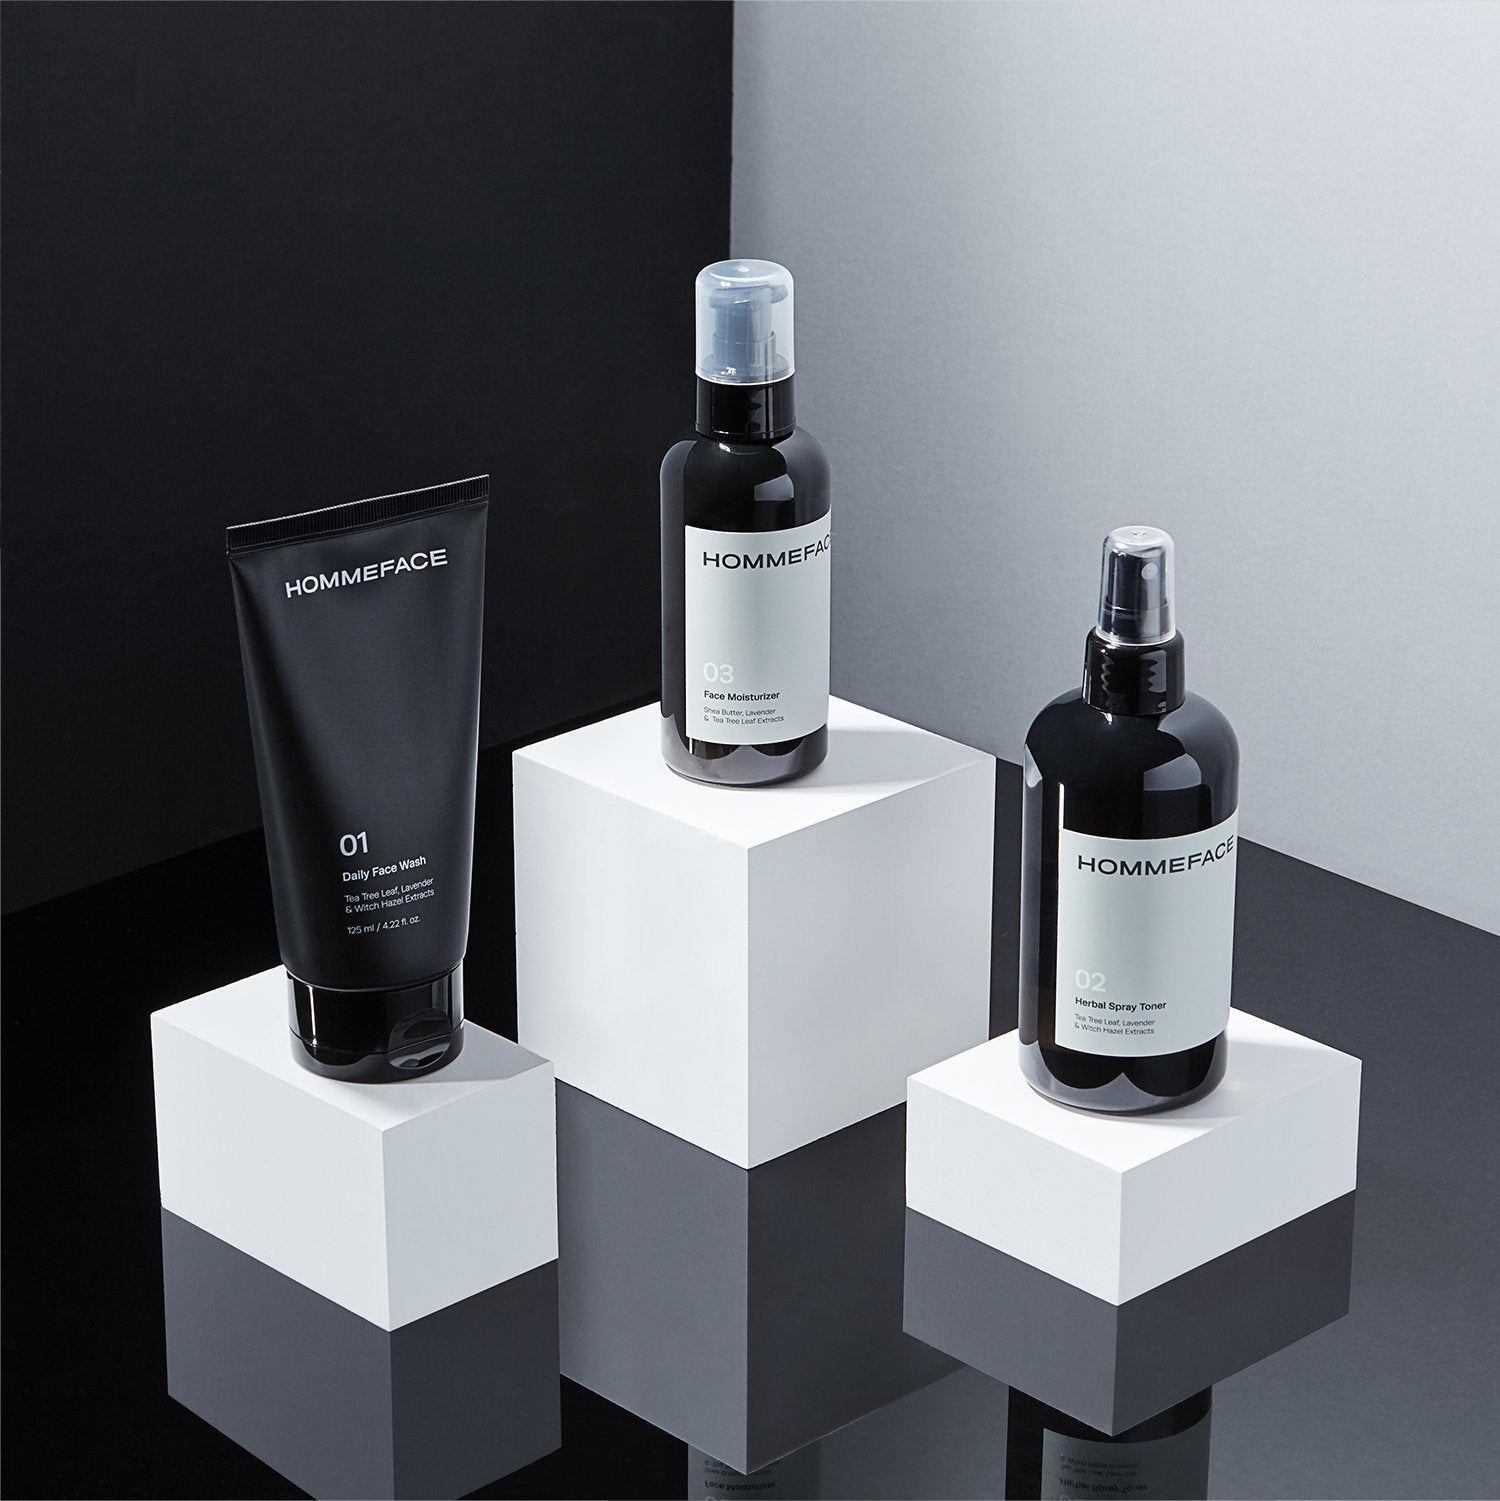 HOMMEFACE Daily Trio Set is a 3 step skincare kit for men. Set includes daily face wash, herbal spray facial toner, and face moisturizer. For all skin types, vegan, natural, alcohol-free, cruelty-free, and made without harsh chemicals. Great gifts for him.